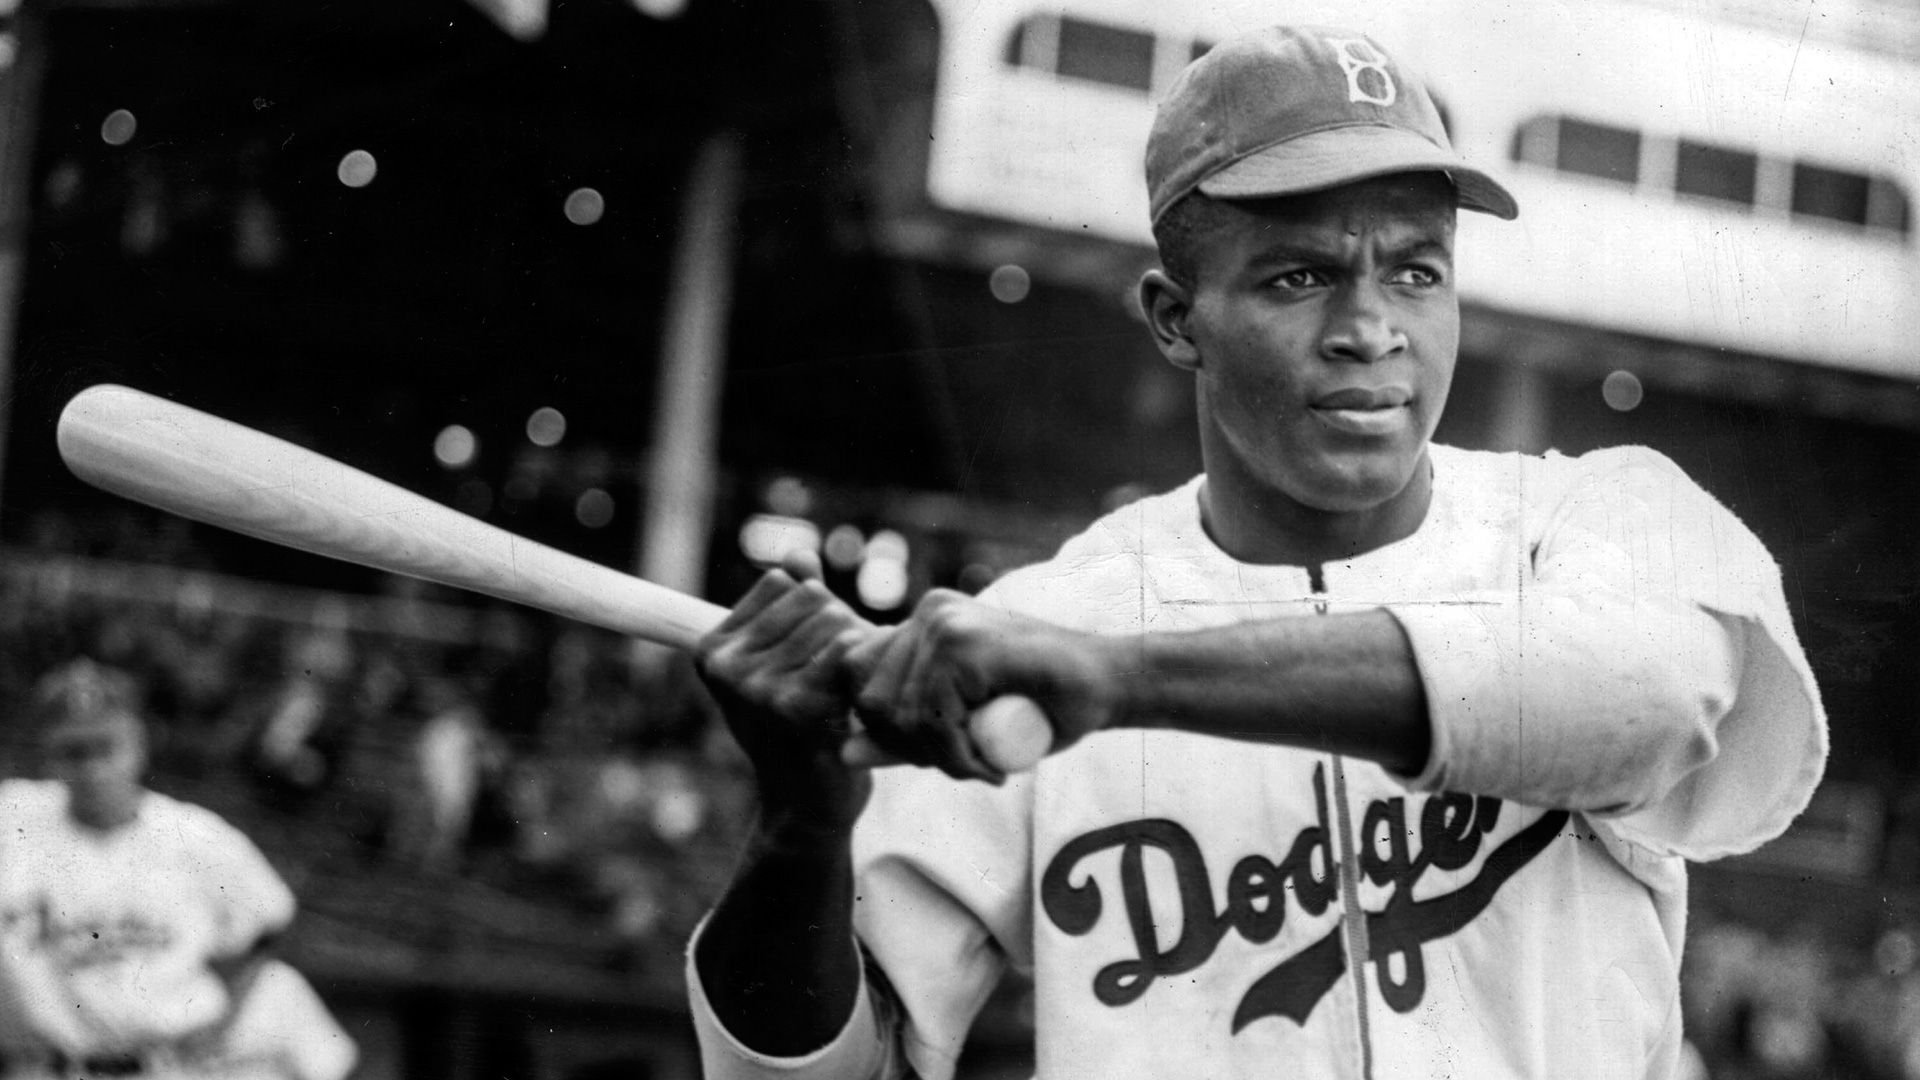 Jackie Robinson was one heck of a baseball player, beyond